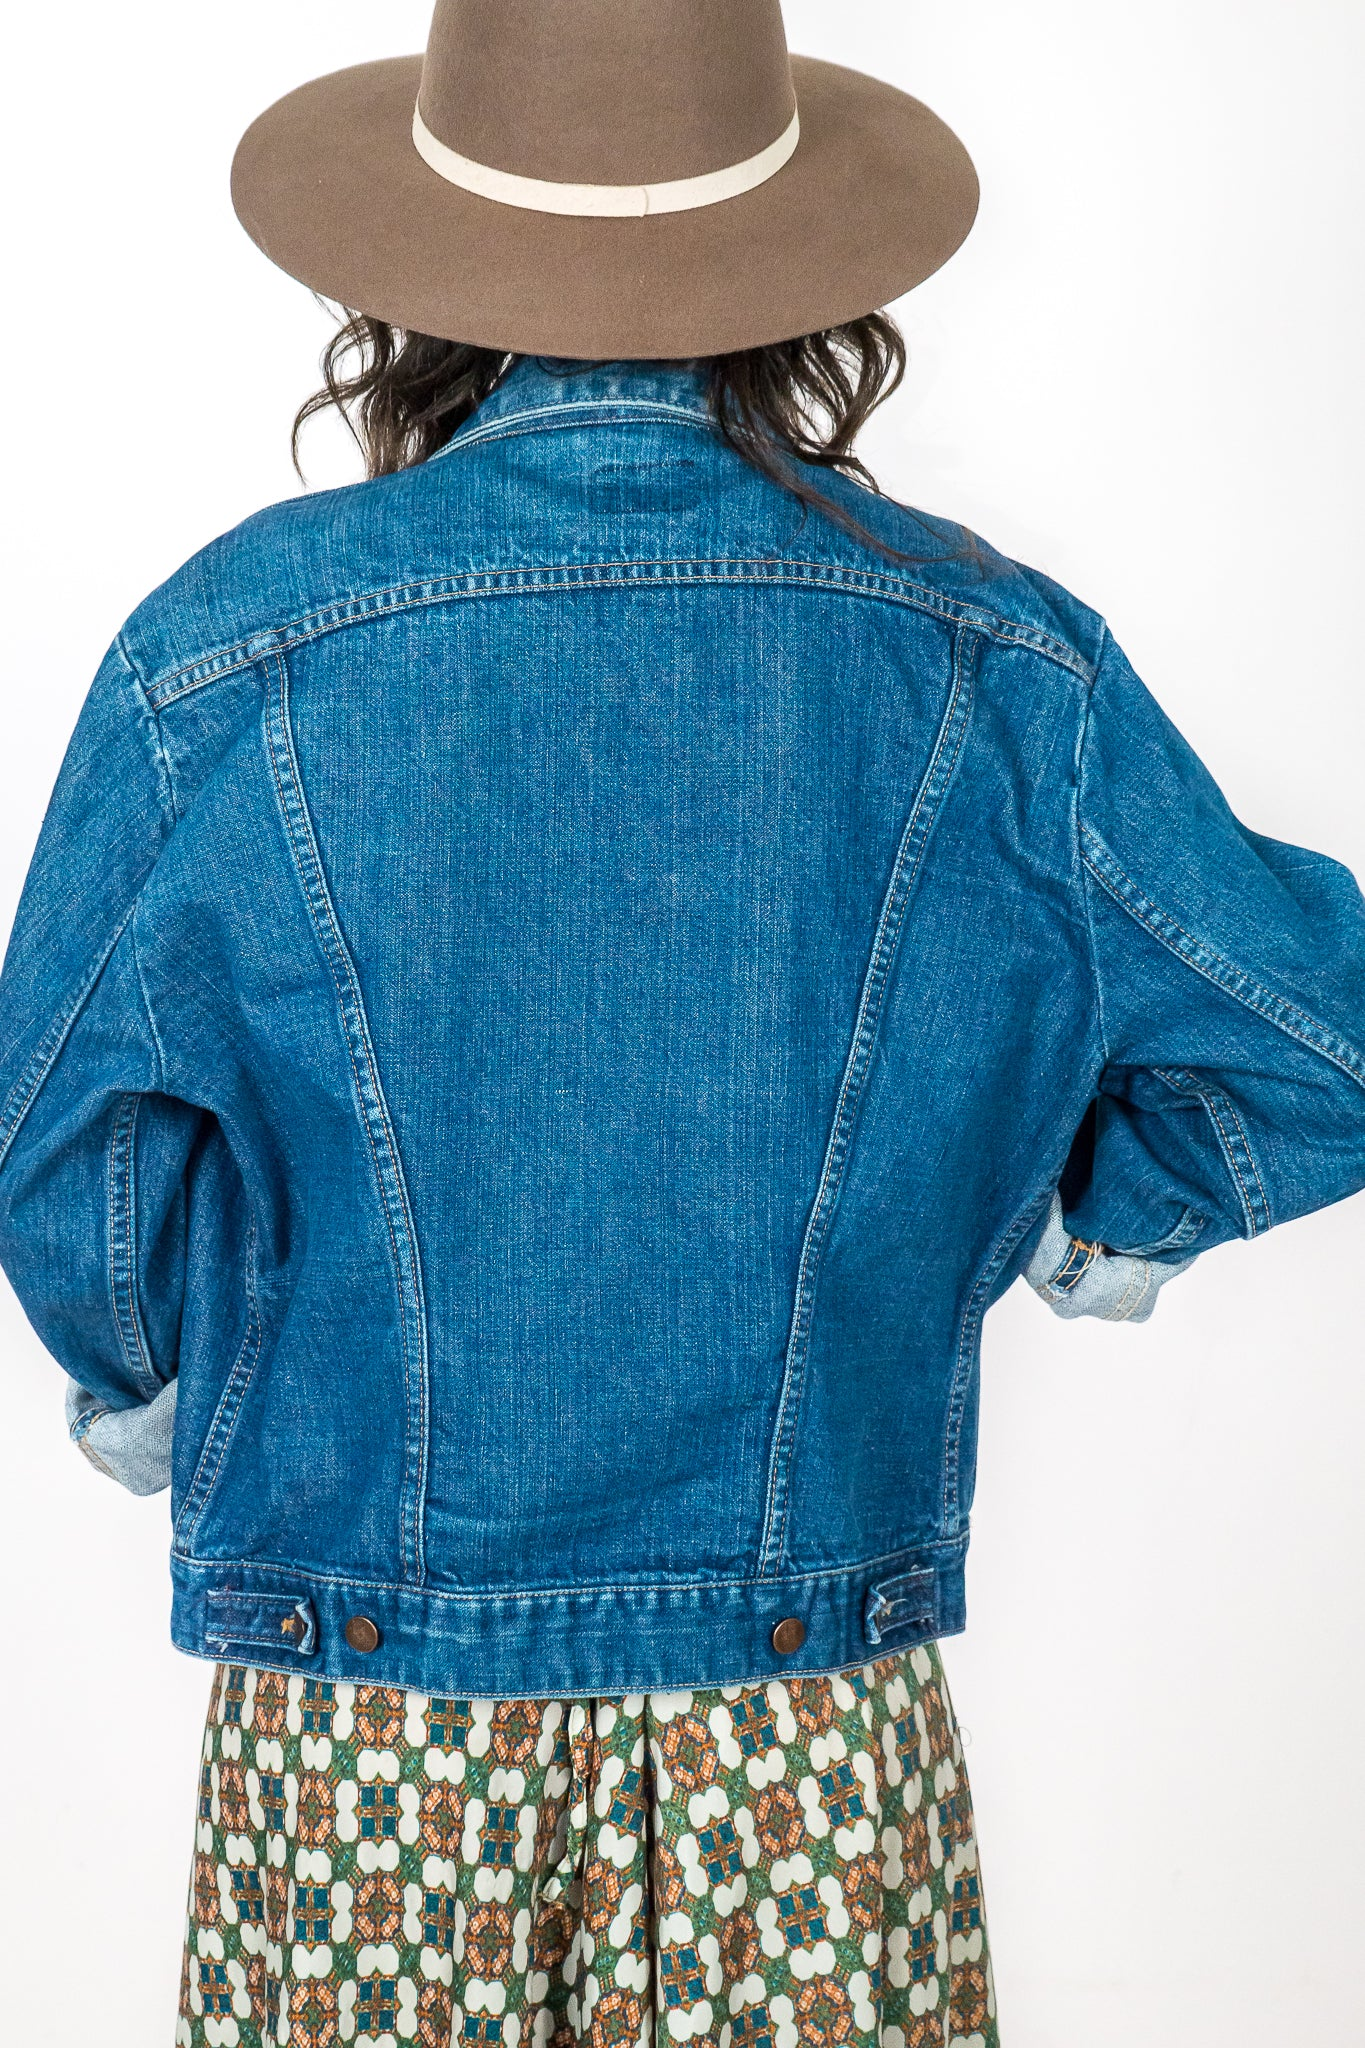 Vintage Wrangler Denim Jacket - The Canyon